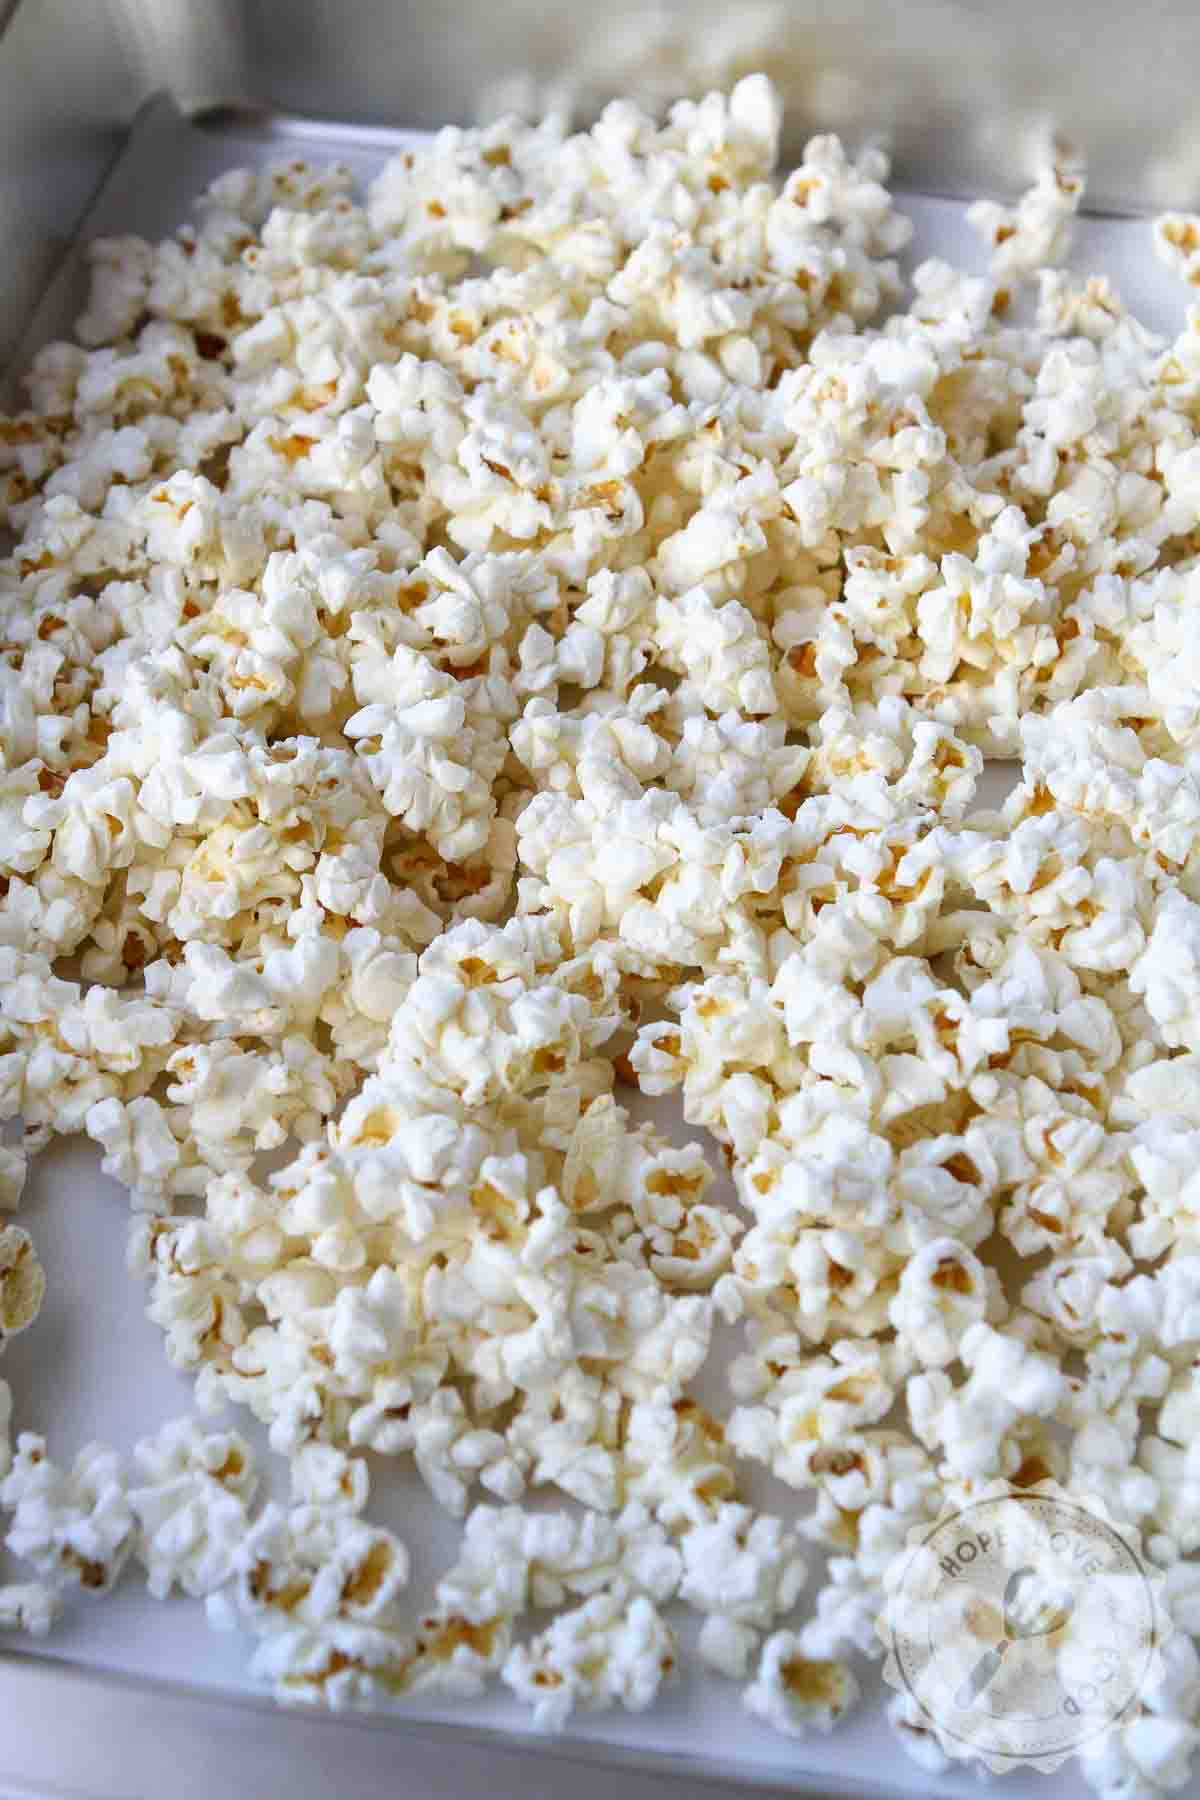 Popcorn on parchment-lined baking pan.